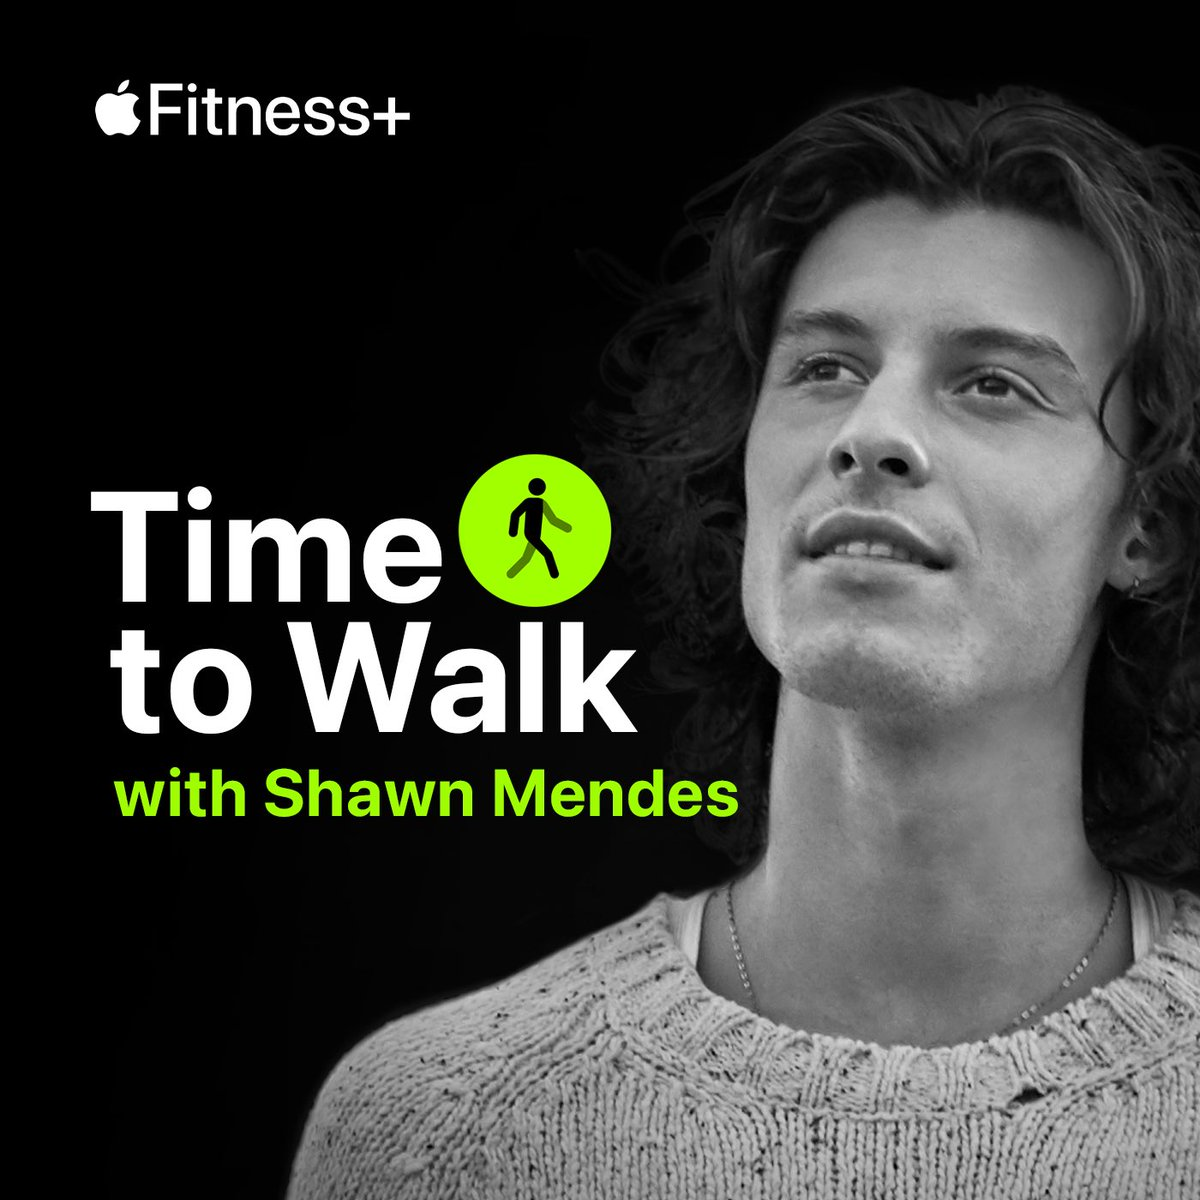 Shawn's episode of Time to Walk, a new audio walking experience, is available now in the Workout app on Apple Watch with a Fitness+ subscription! #TimeToWalk #CloseYourRings@ShawnMendes